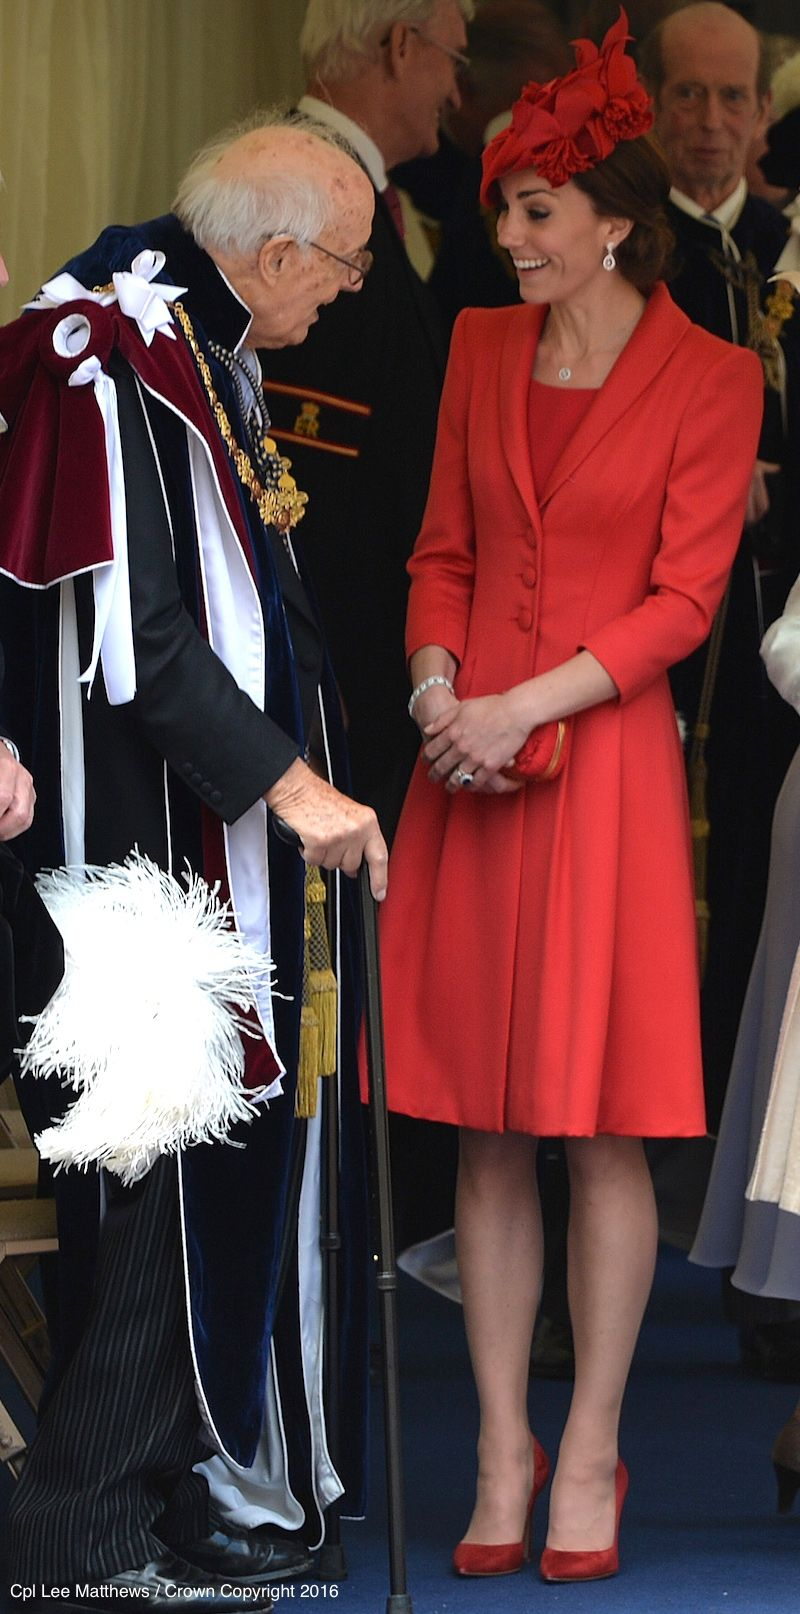 ecdea791d1b Kate Middleton wears red coat and dress by Catherine Walker for the Order  of the Garter ceremony